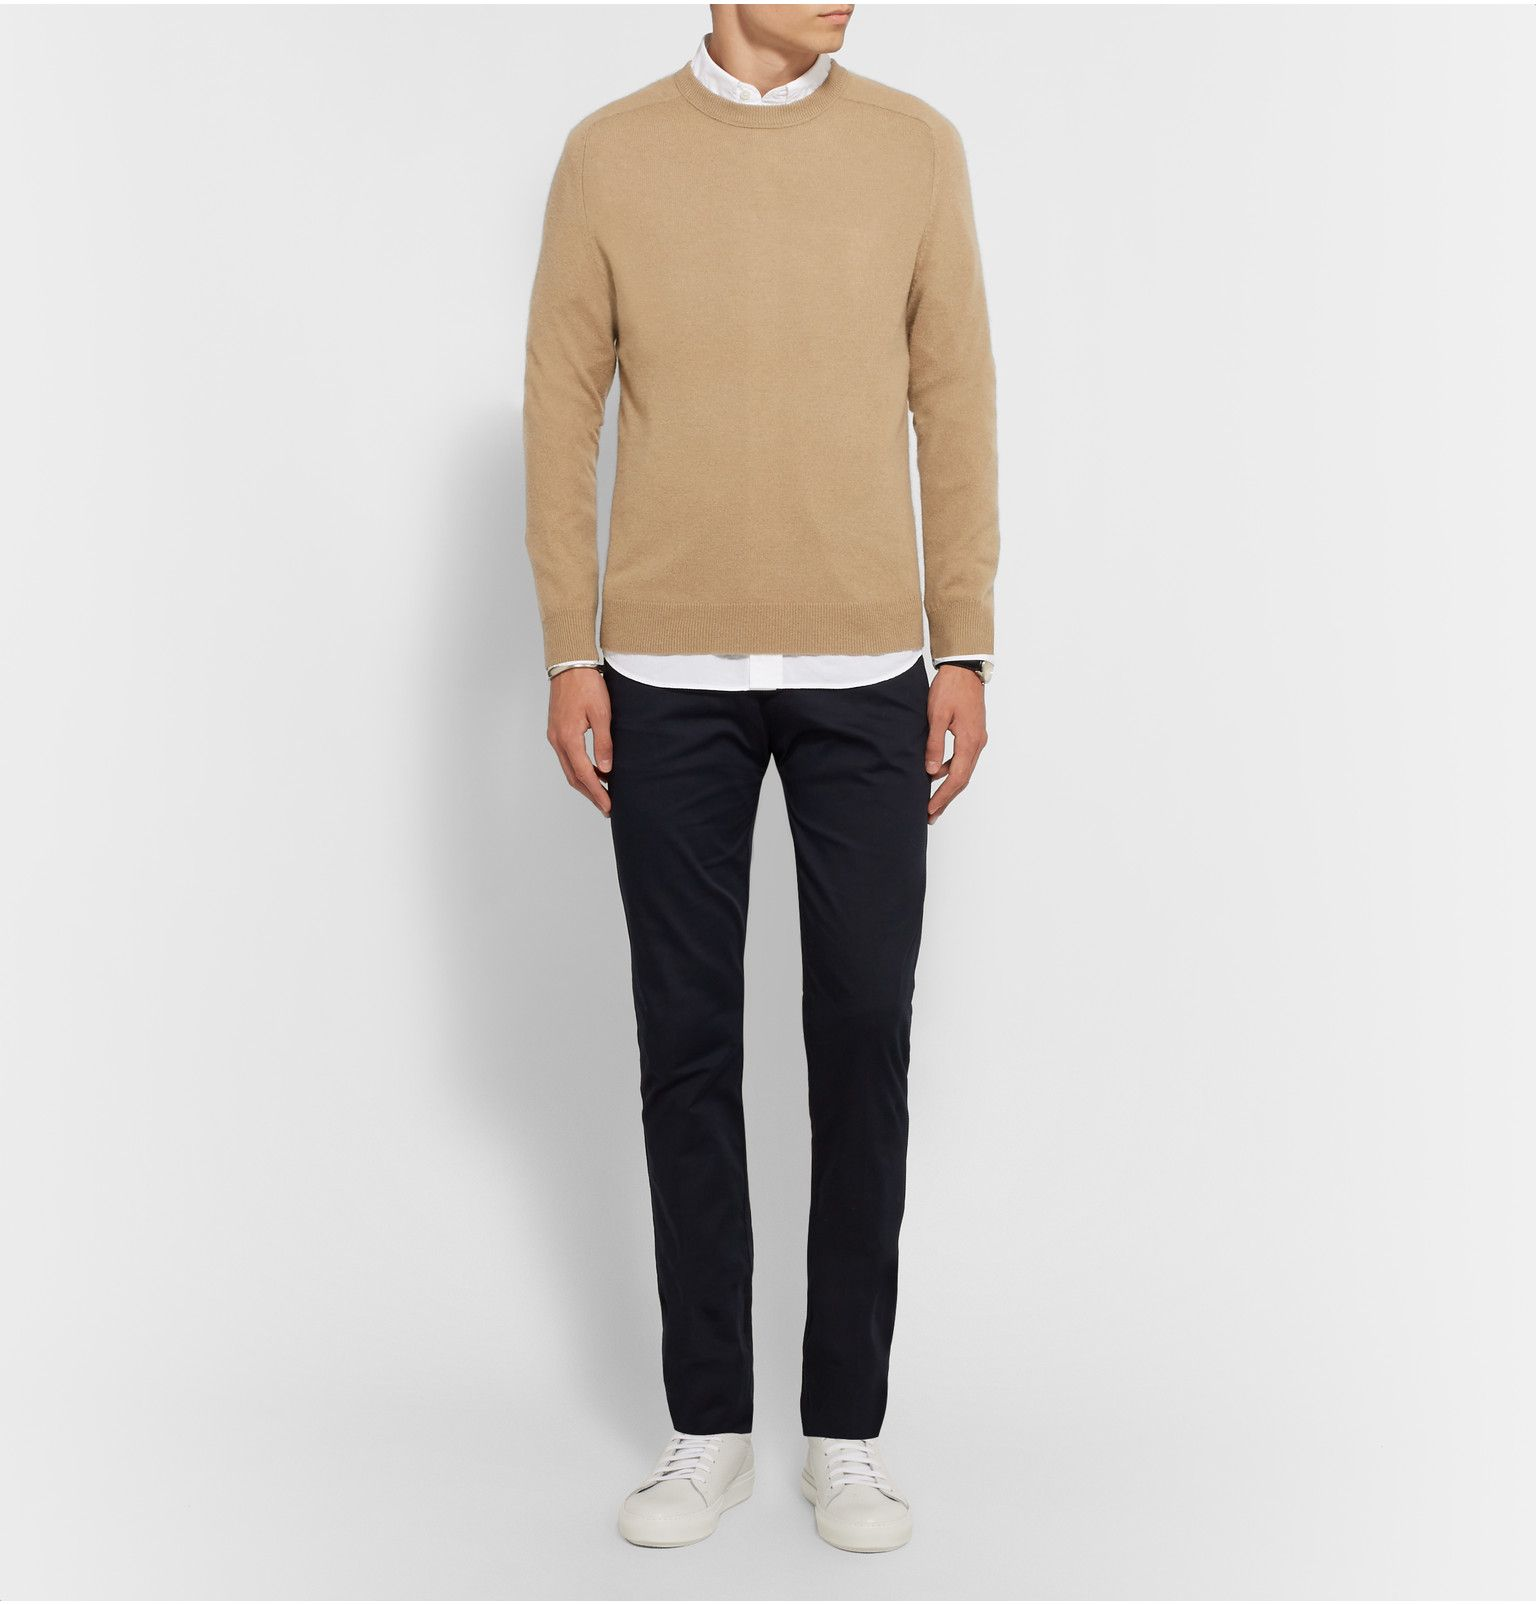 Acne Studio camel color cashmere sweater | Haberdash | Pinterest ...